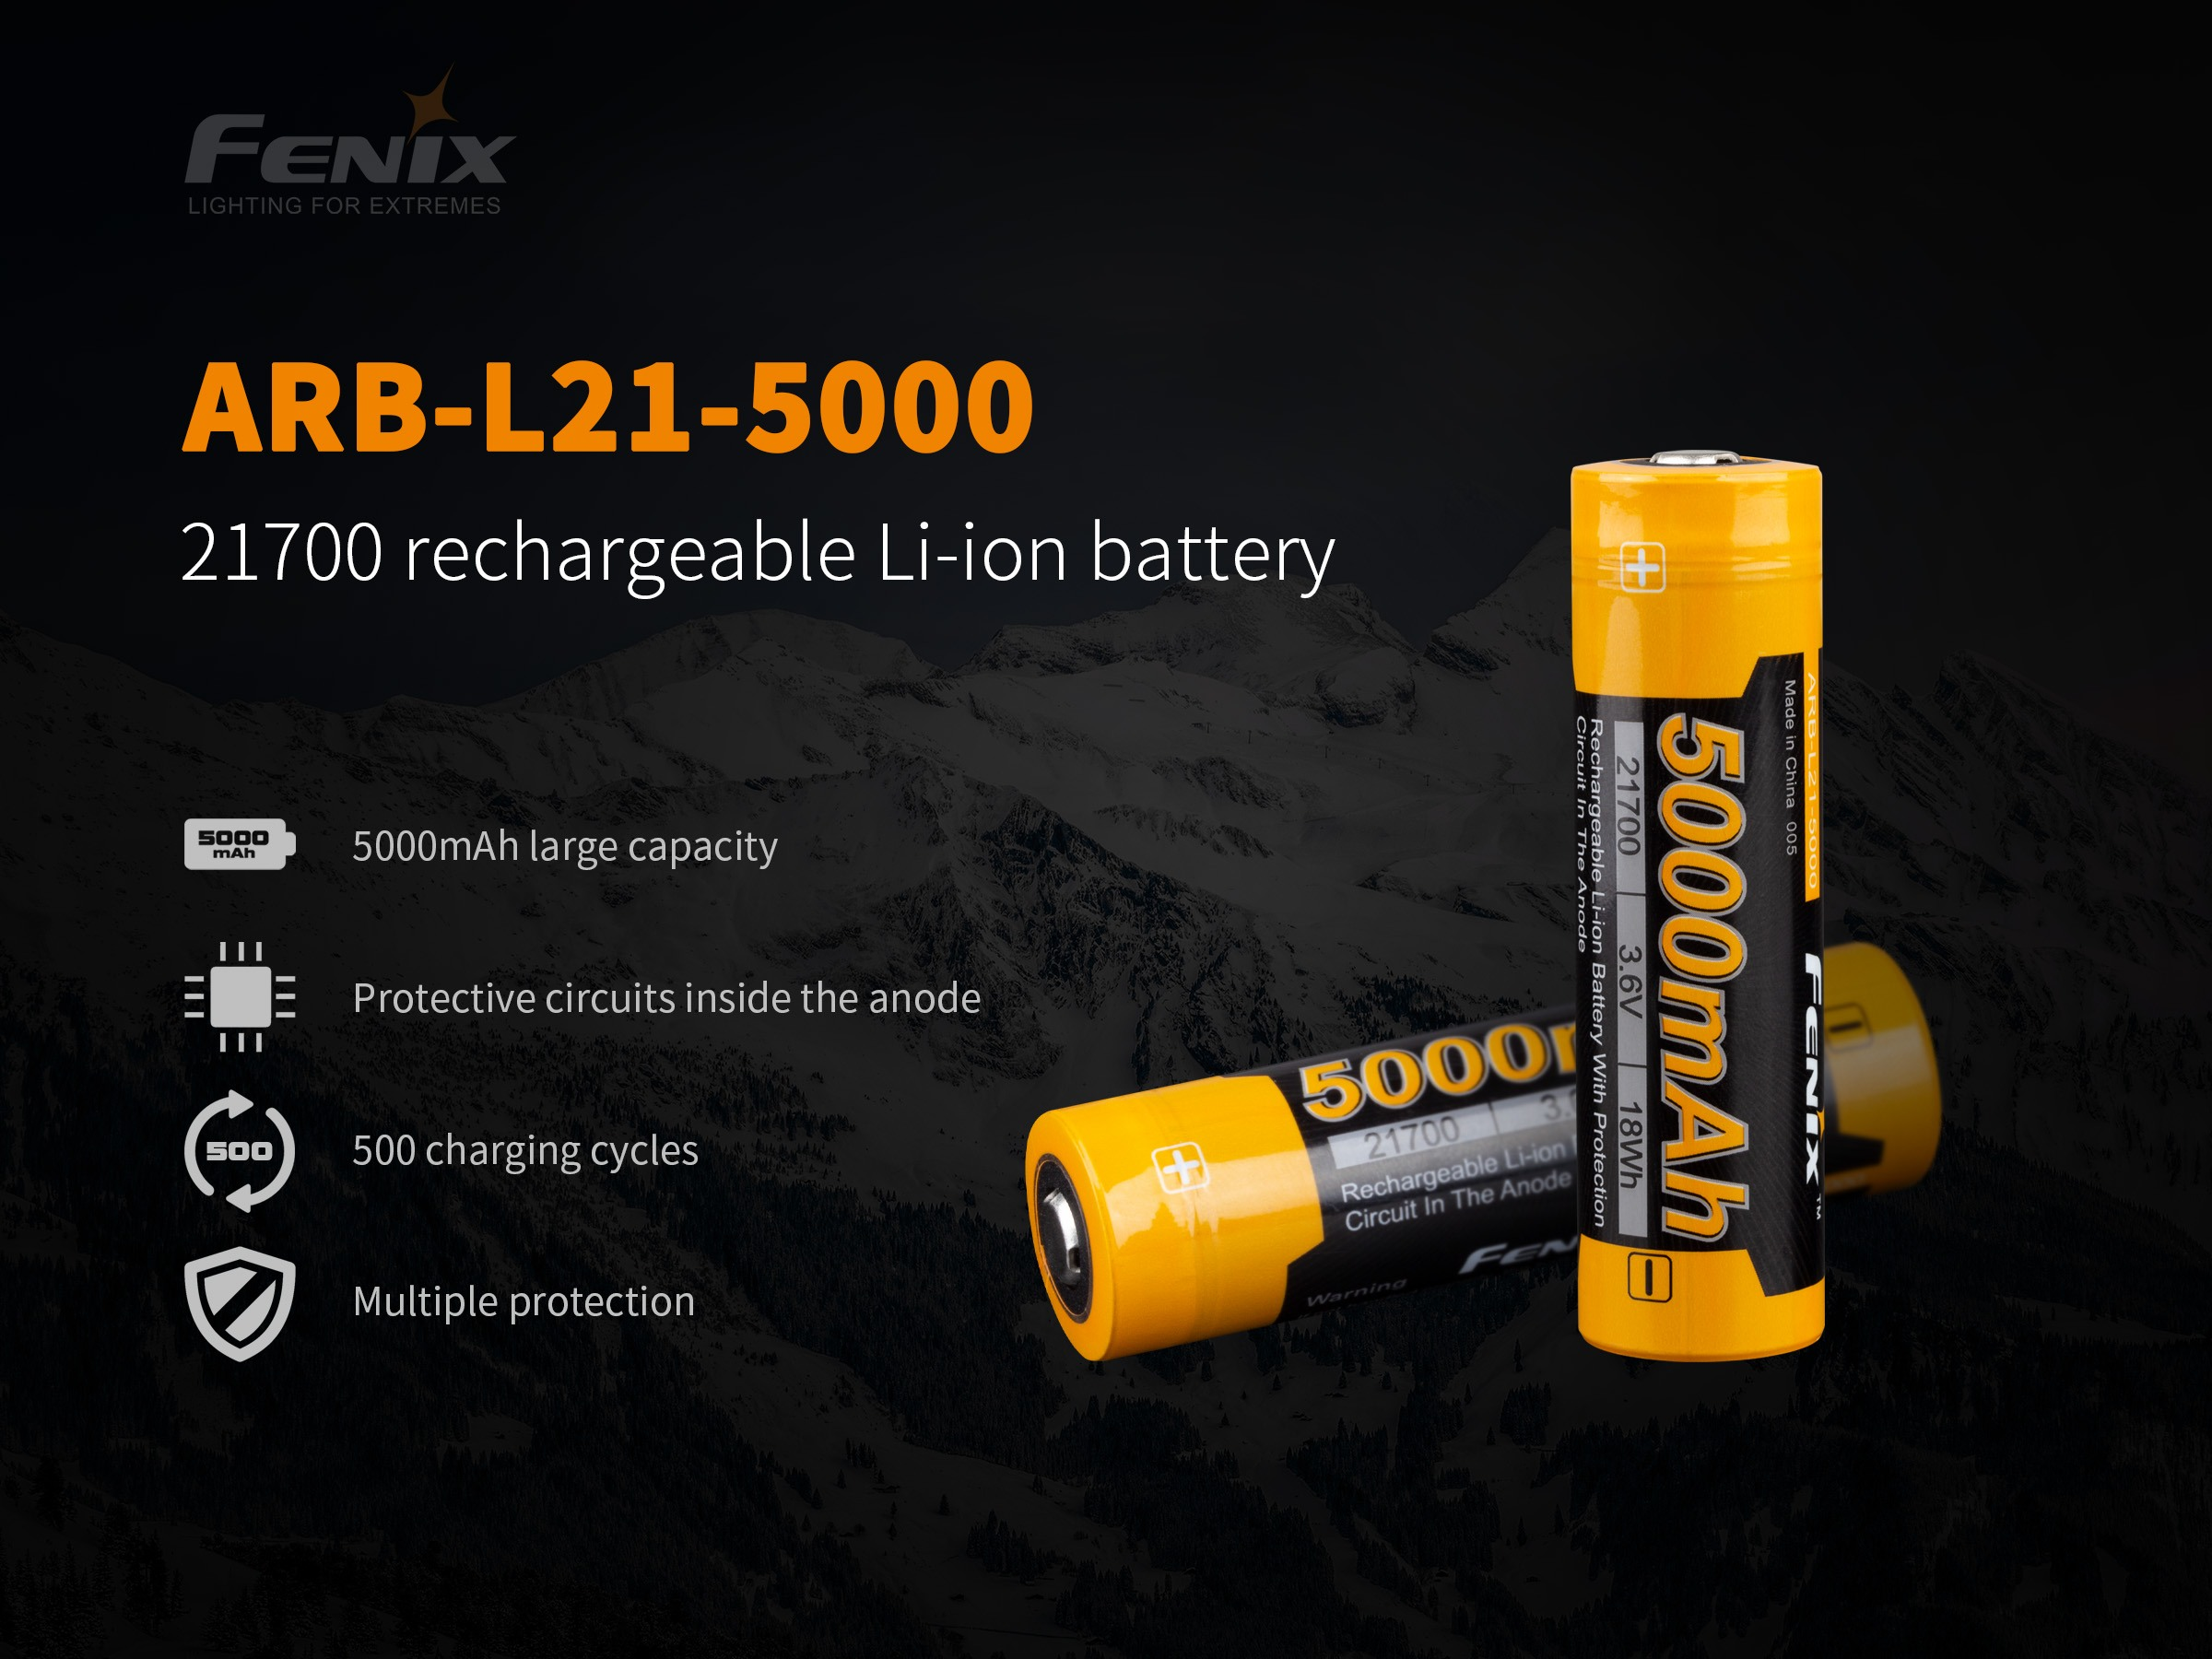 Fenix Rechargeable 21700 Li-ion Battery - 5000 mAh